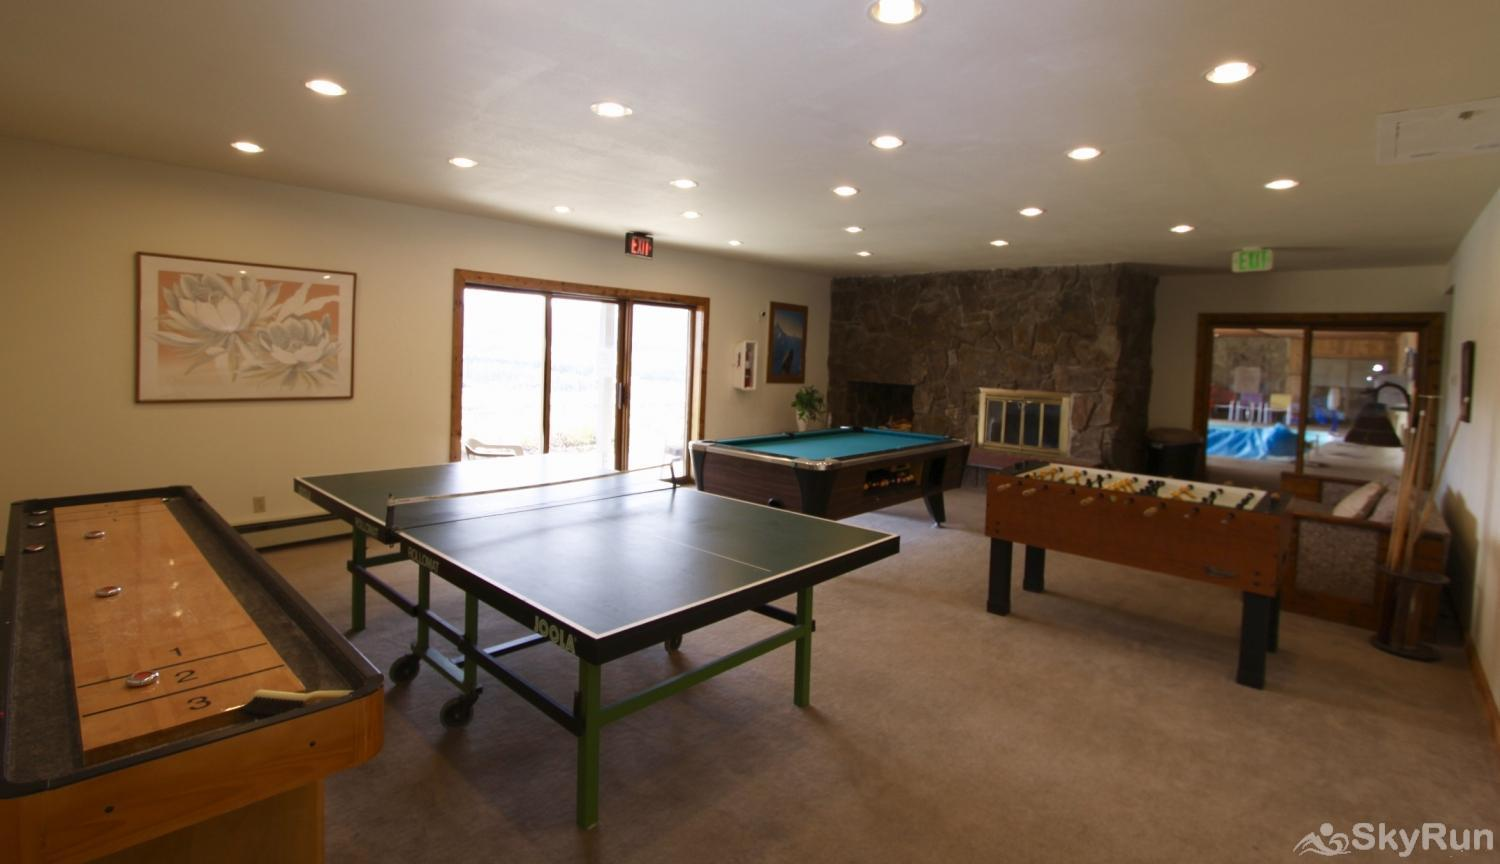 113A WPTC - Cranmer Rd Game Room